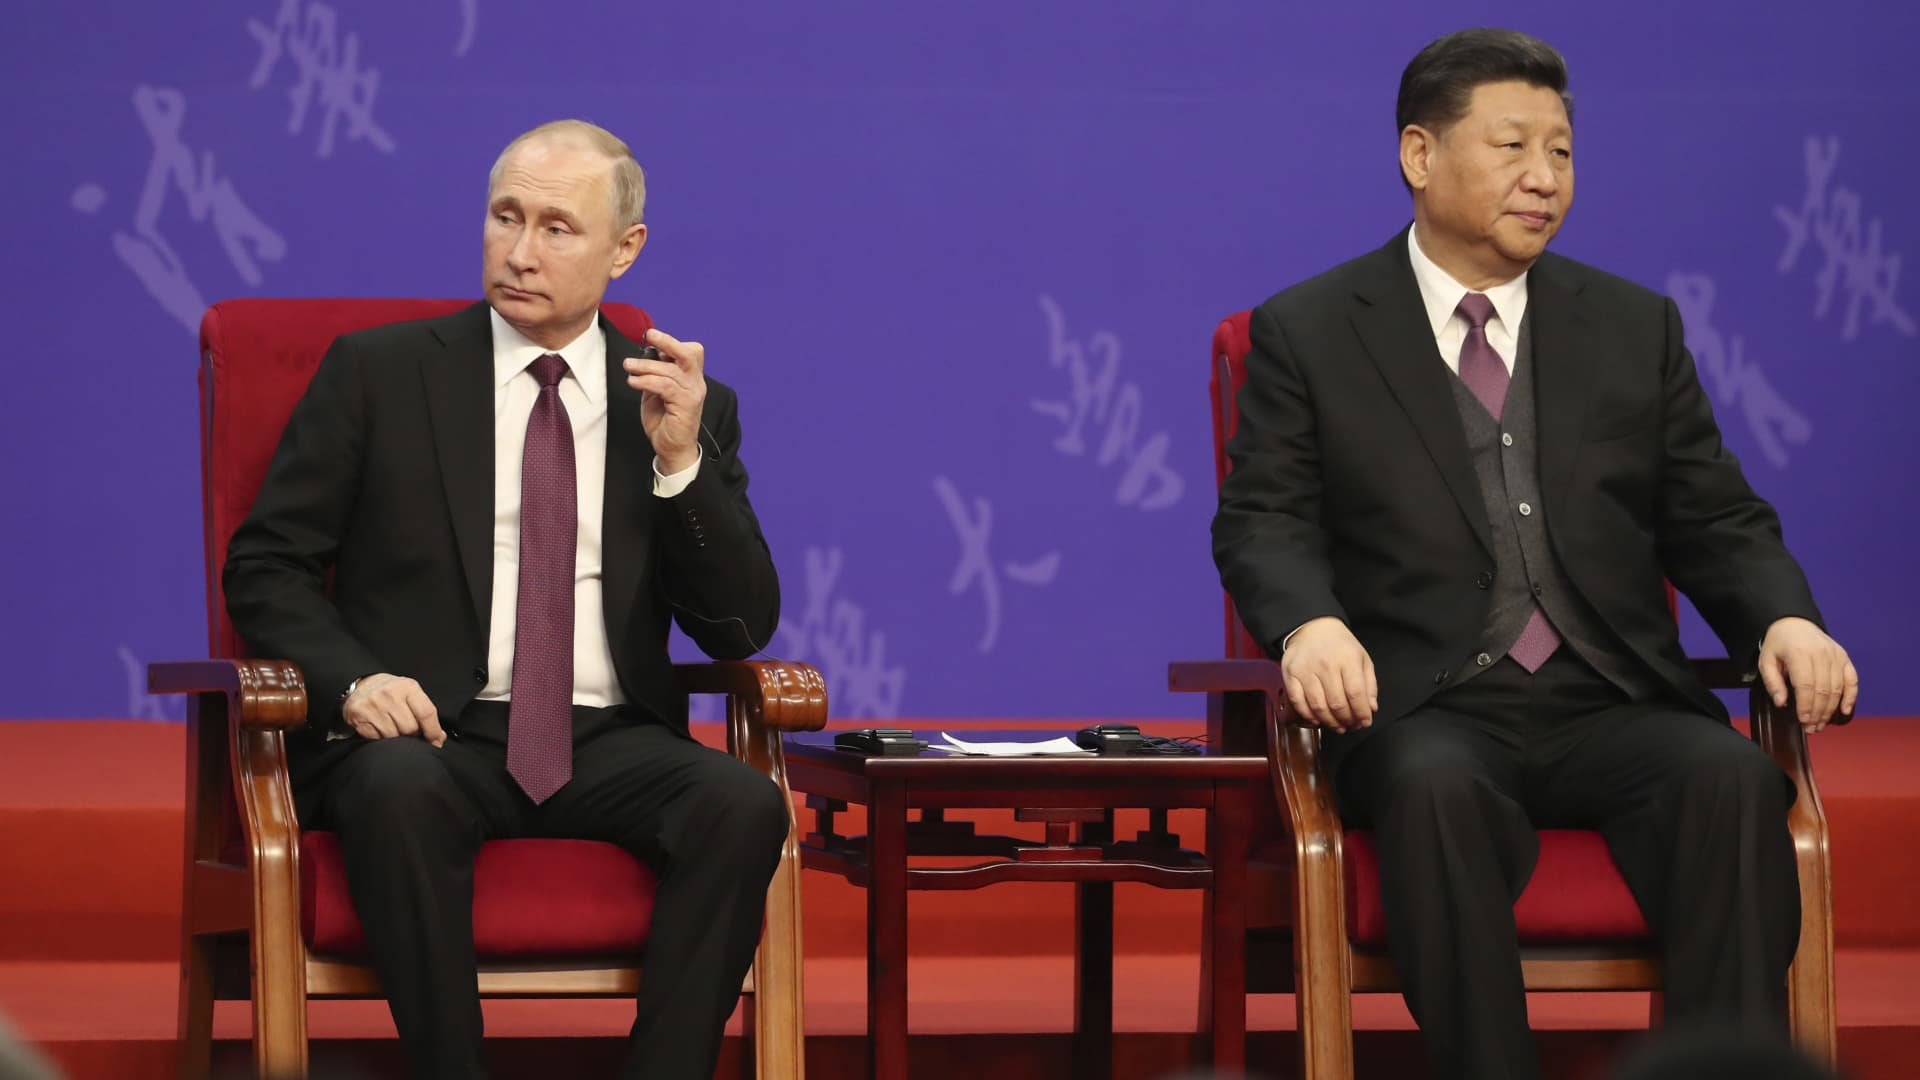 Russian President Vladimir Putin, left, and Chinese President Xi Jinping, right, attend the Tsinghua Universitys ceremony, at Friendship Palace on April 26, 2019 in Beijing, China.